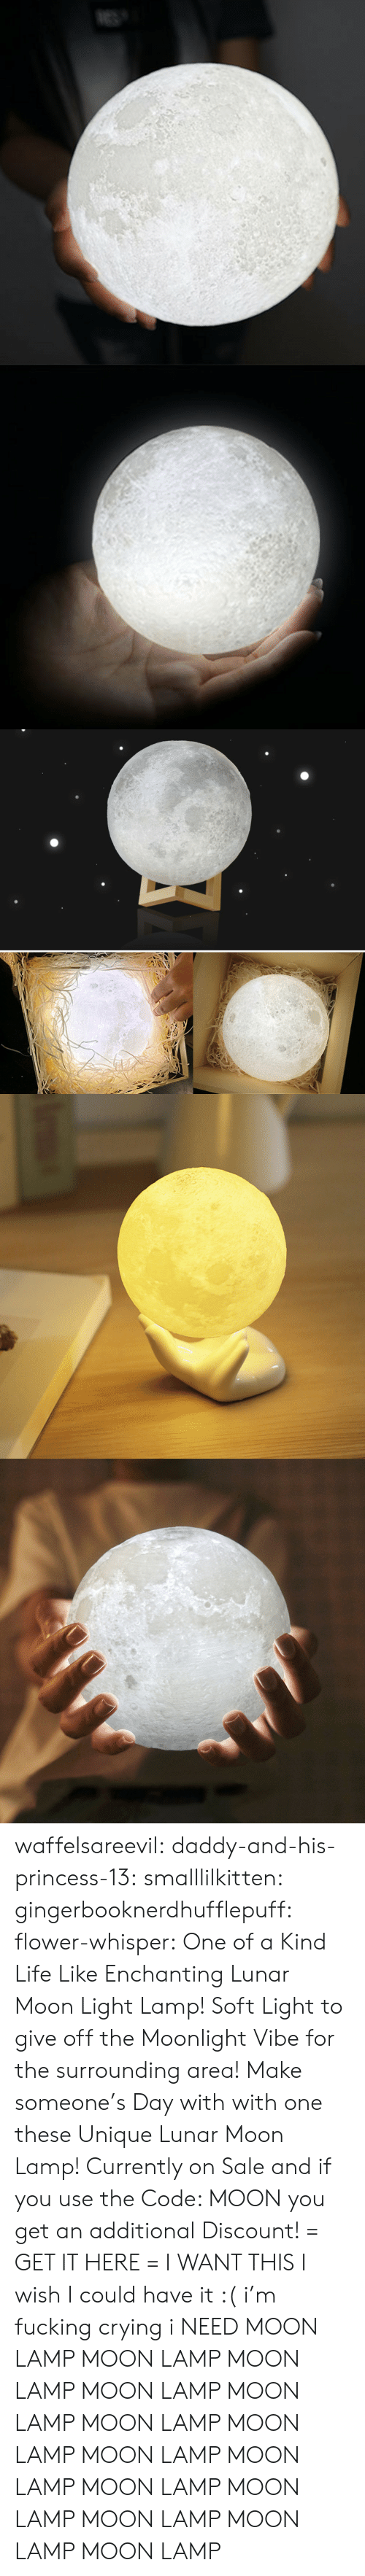 Crying, Fucking, and Life: waffelsareevil:  daddy-and-his-princess-13: smalllilkitten:   gingerbooknerdhufflepuff:   flower-whisper:  One of a Kind Life Like Enchanting Lunar Moon Light Lamp! Soft Light to give off the Moonlight Vibe for the surrounding area! Make someone's Day with with one these Unique Lunar Moon Lamp! Currently on Sale and if you use the Code: MOON you get an additional Discount! = GET IT HERE =   I WANT THIS   I wish I could have it :(   i'm fucking crying i NEED   MOON LAMP MOON LAMP MOON LAMP MOON LAMP MOON LAMP MOON LAMP MOON LAMP MOON LAMP MOON LAMP MOON LAMP MOON LAMP MOON LAMP MOON LAMP MOON LAMP